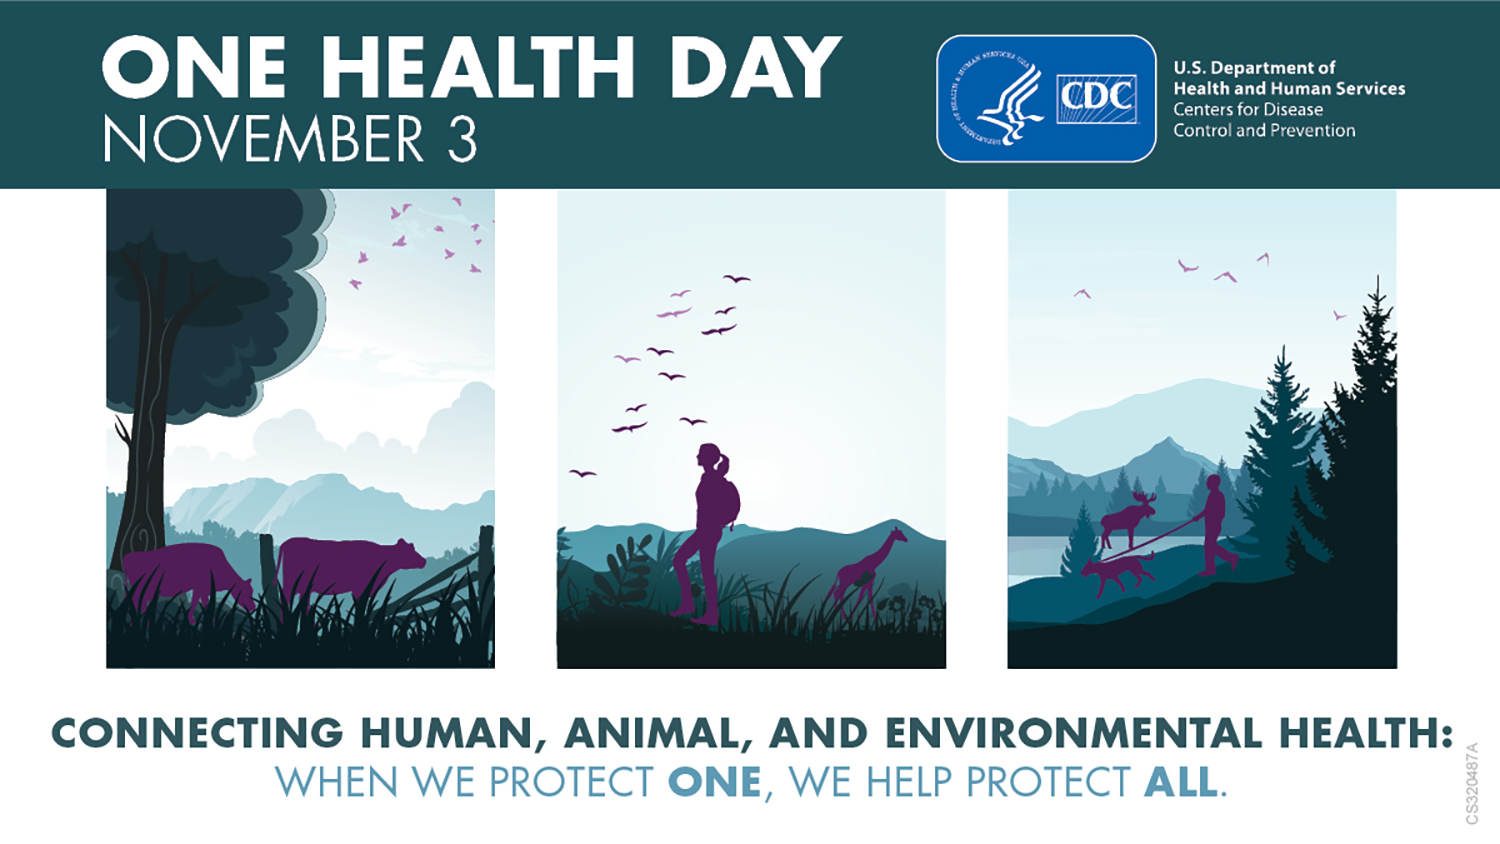 One Health Day November 3